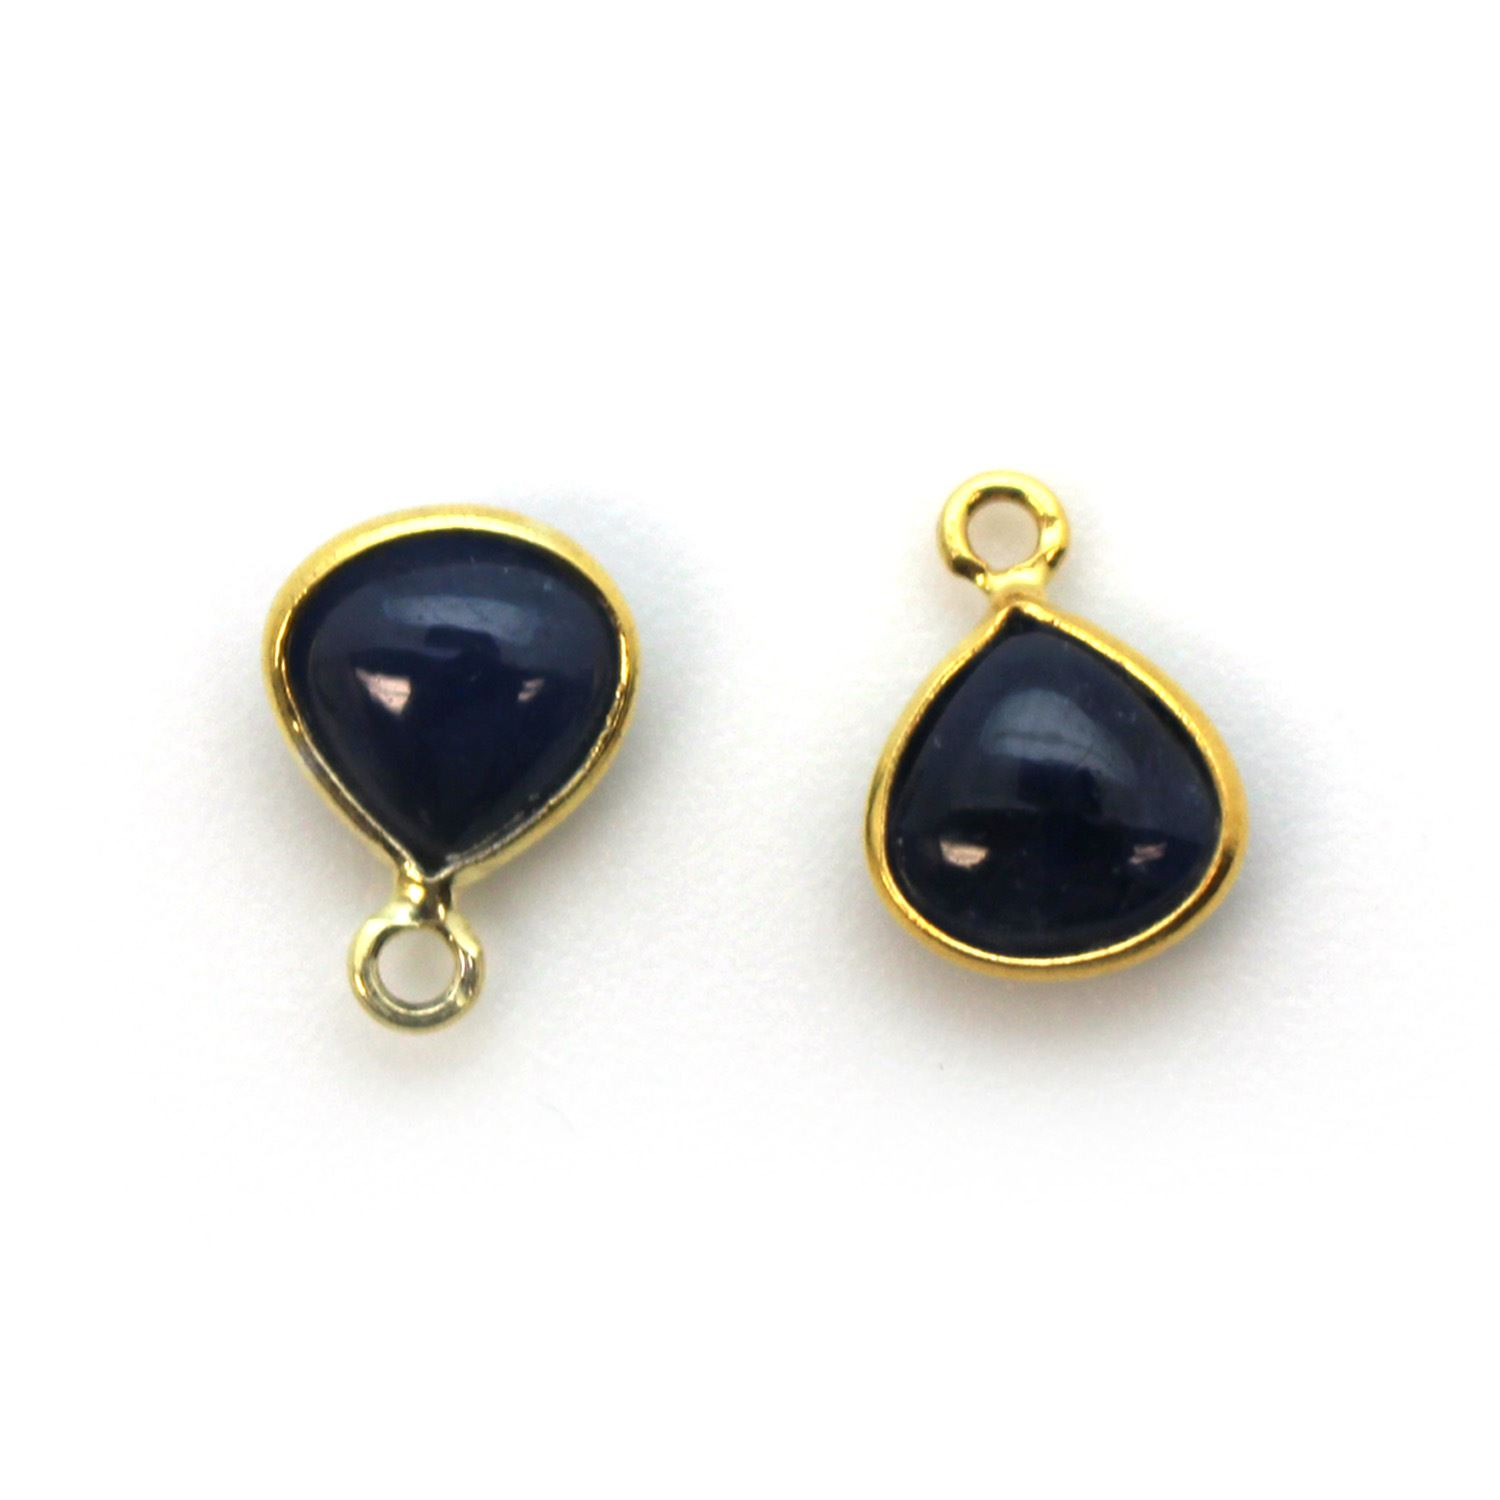 Bezel Charm Pendant - Gold Plated Sterling Silver Charm - Natural Blue Sapphire - Tiny Heart Shape -7mm